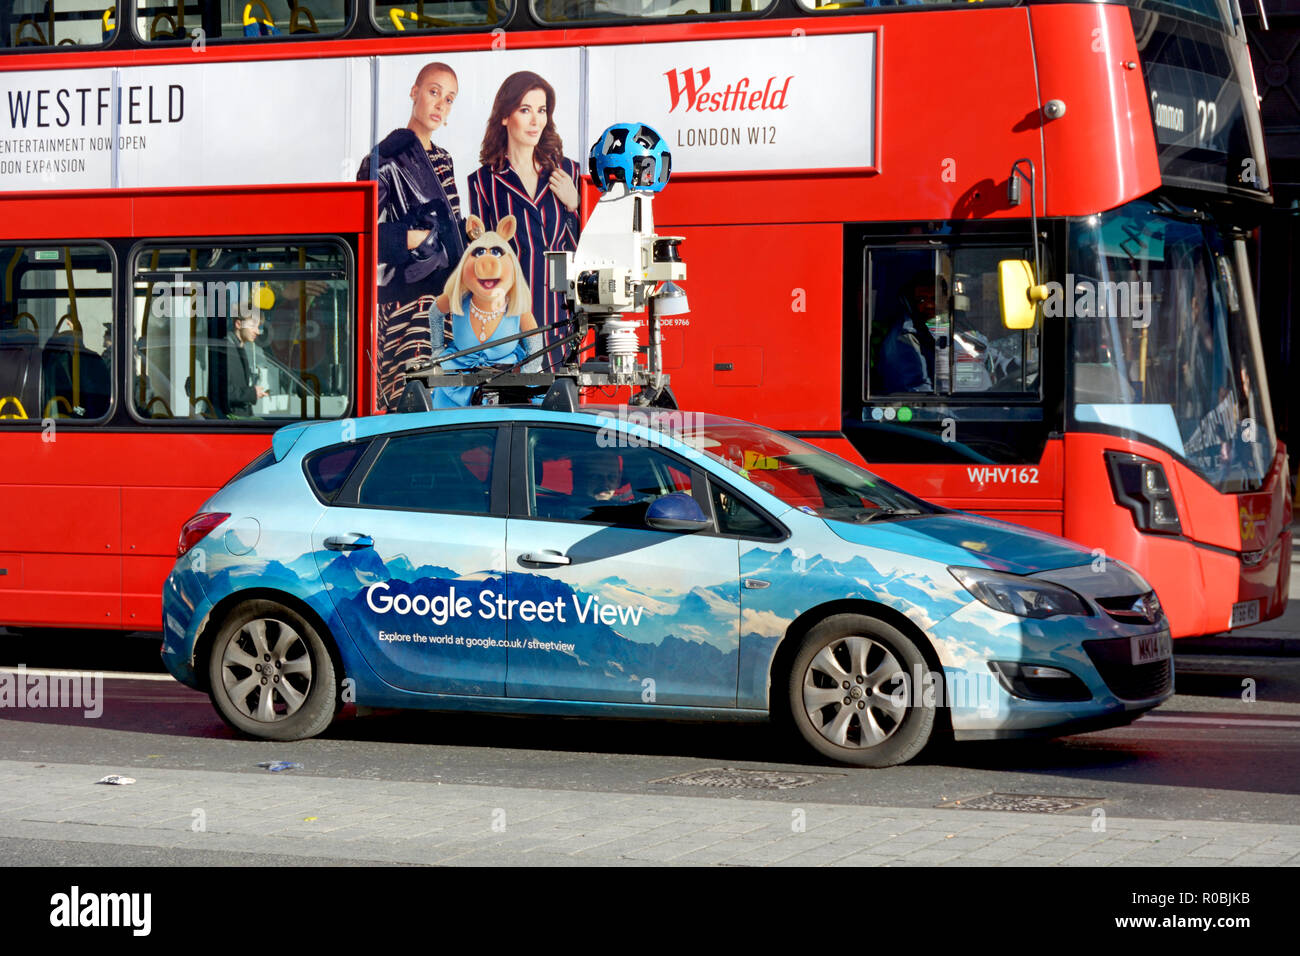 Google Street View camera car in Regent Street, London, England, UK. - Stock Image